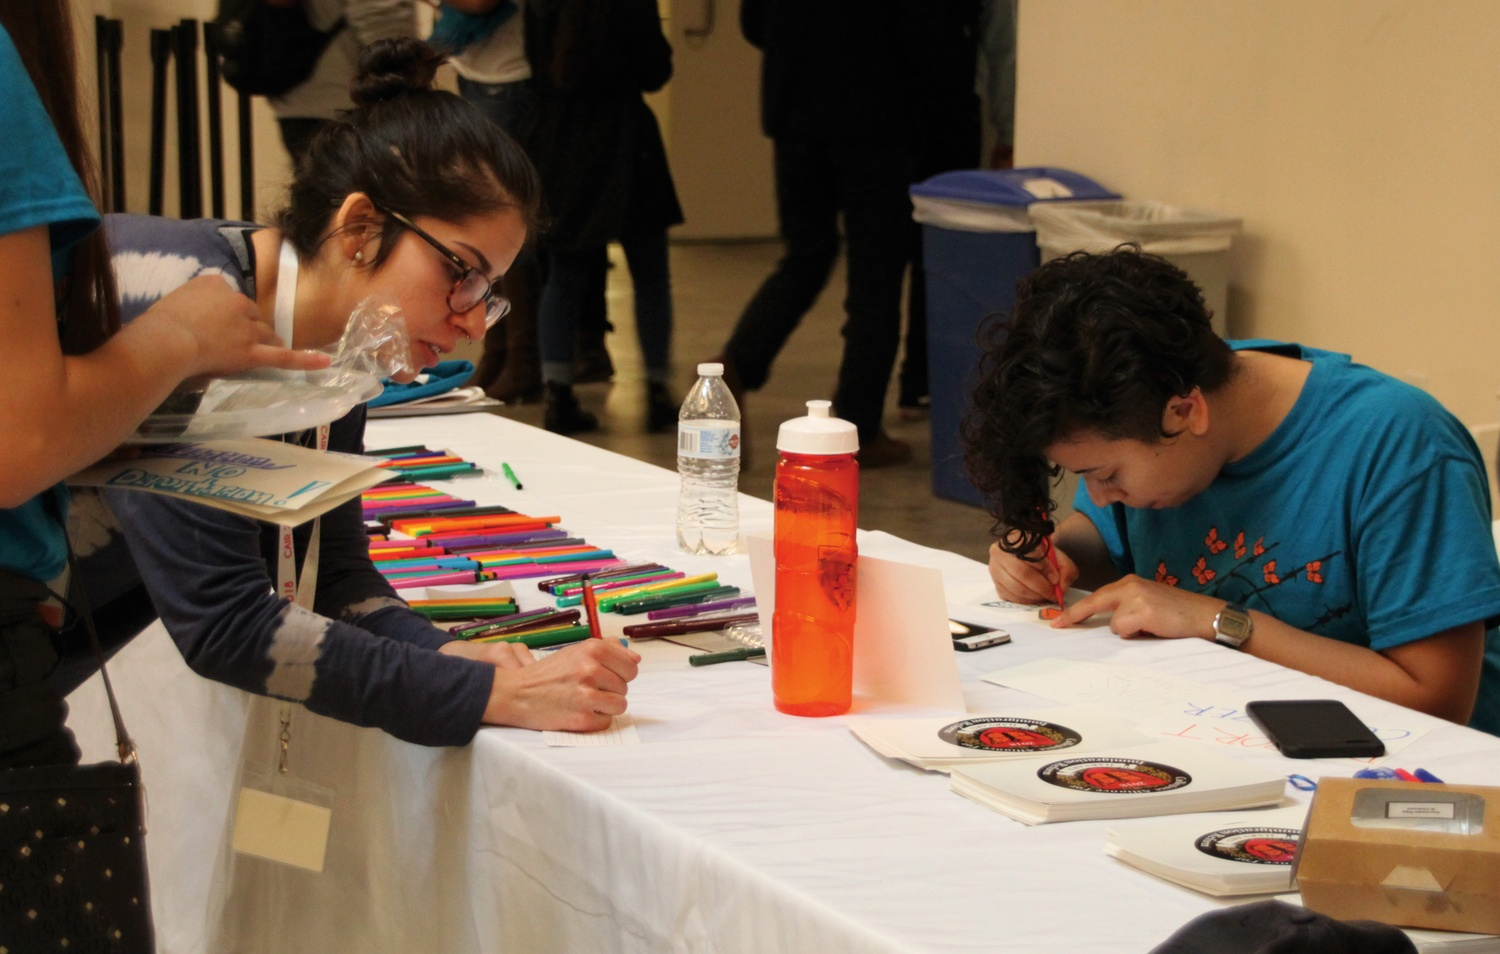 Harvard's Act on a Dream hosts the Collegiate Alliance for Immigration Reform (CAIR) in Northwest Bio Labs this weekend. The conference featured a variety of events including artistic expression led by Karla C. Mendoza '18.